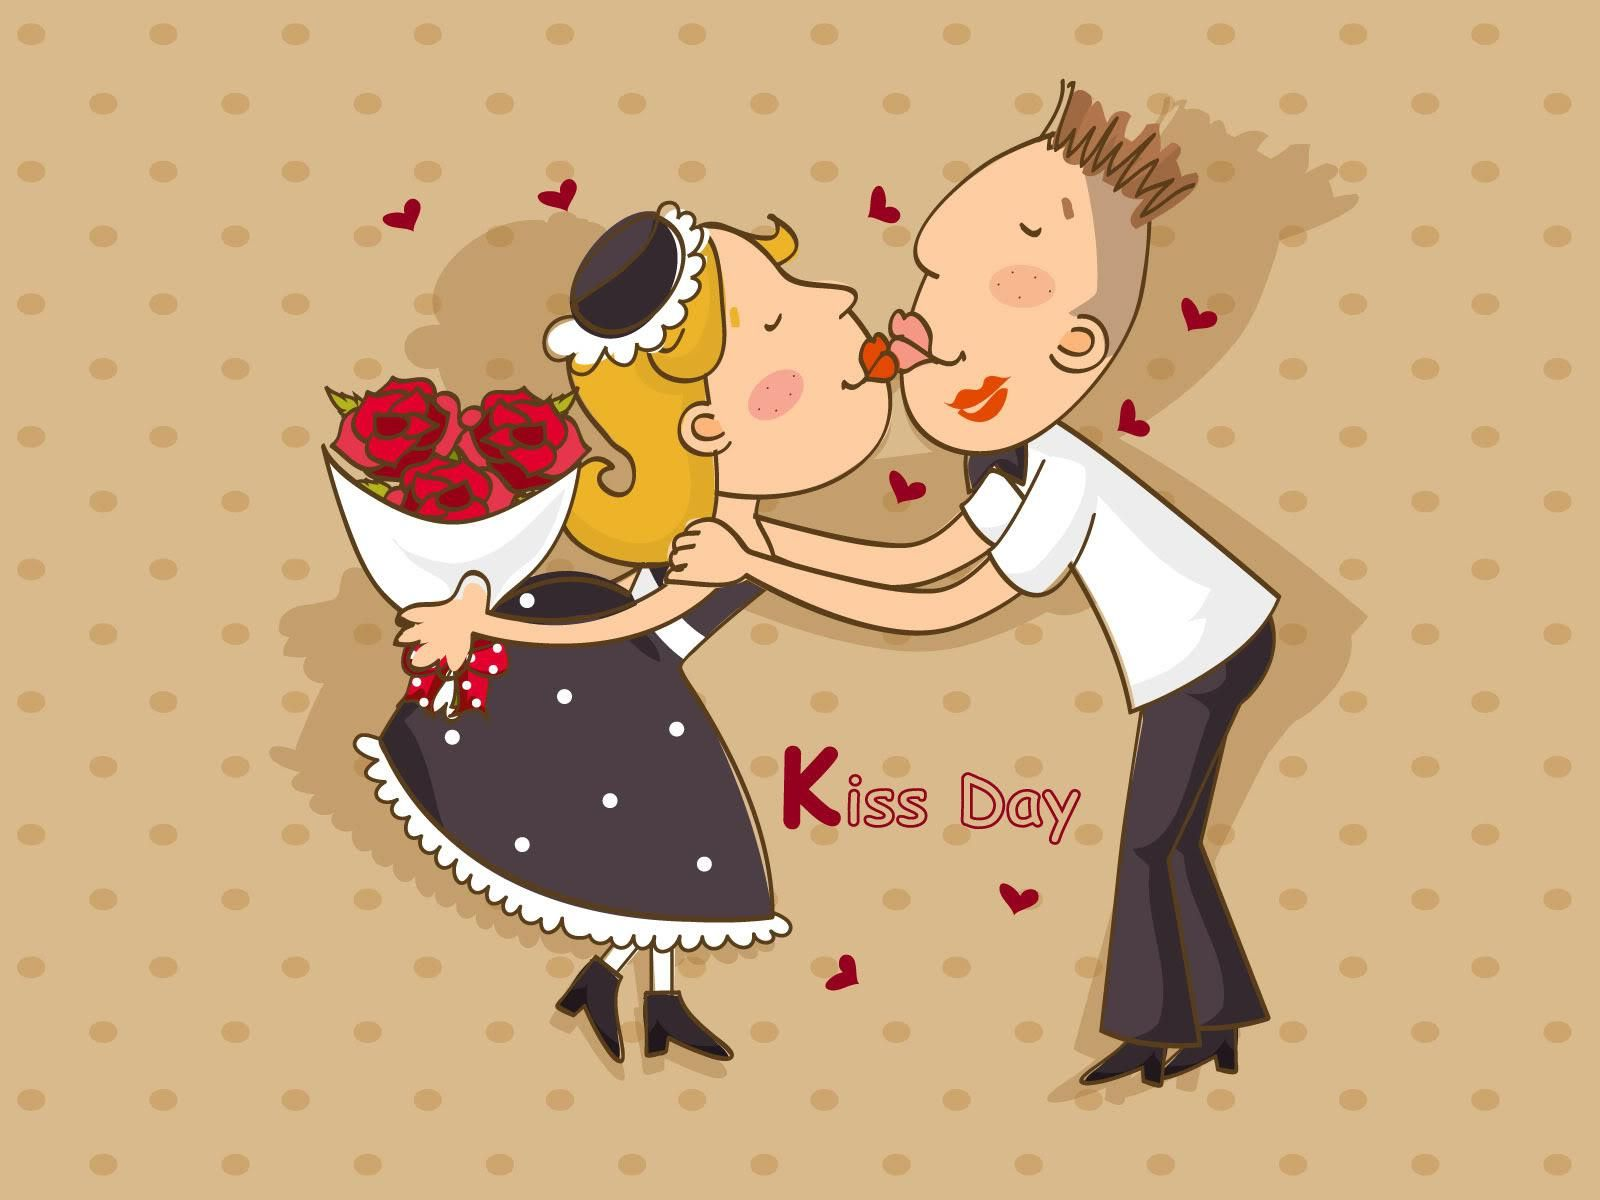 The kiss day wallpapers